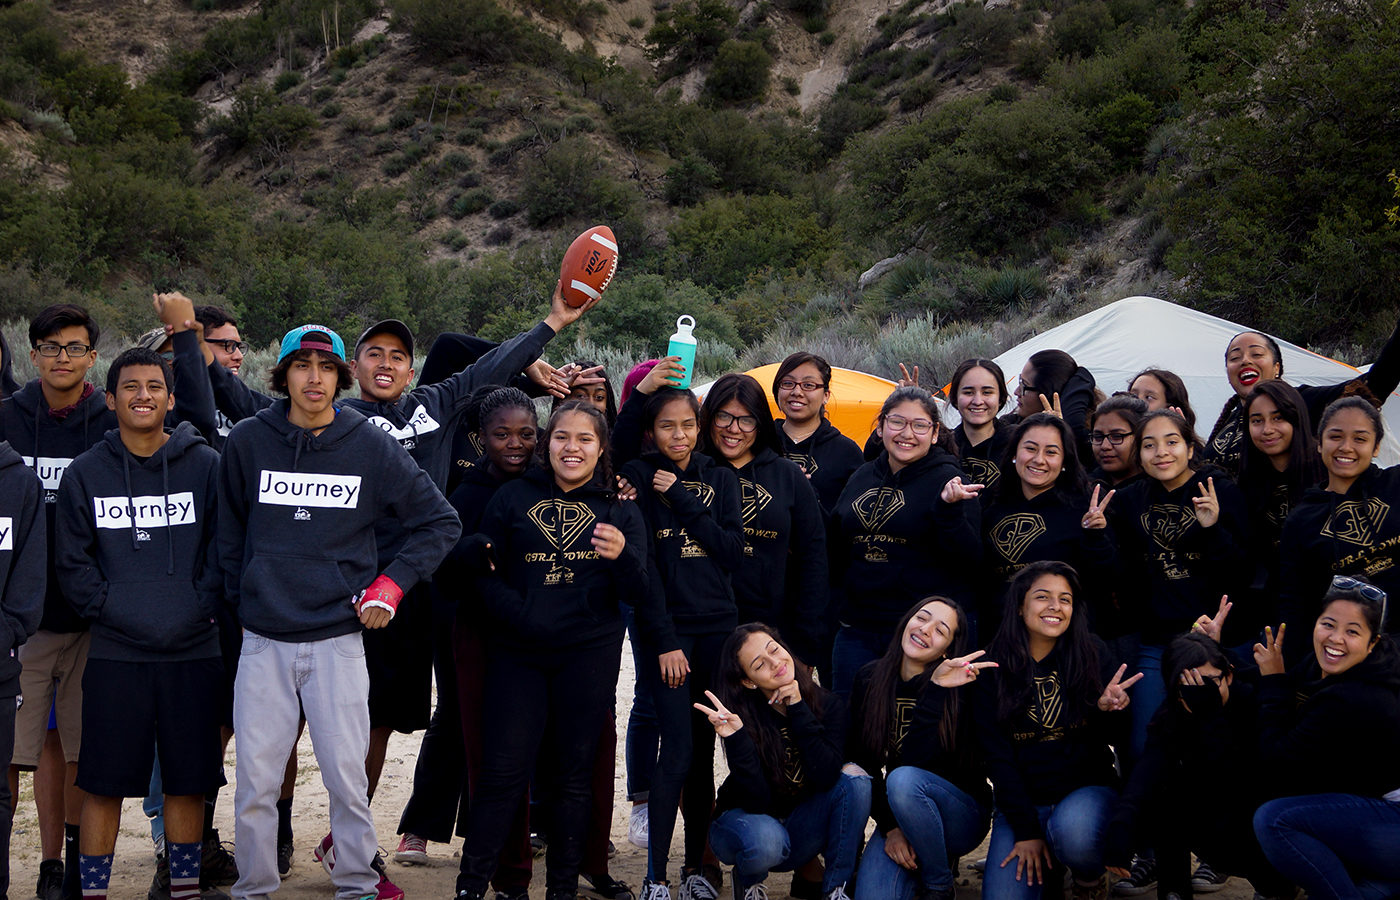 South Central youth enjoy a camping trip at the beach